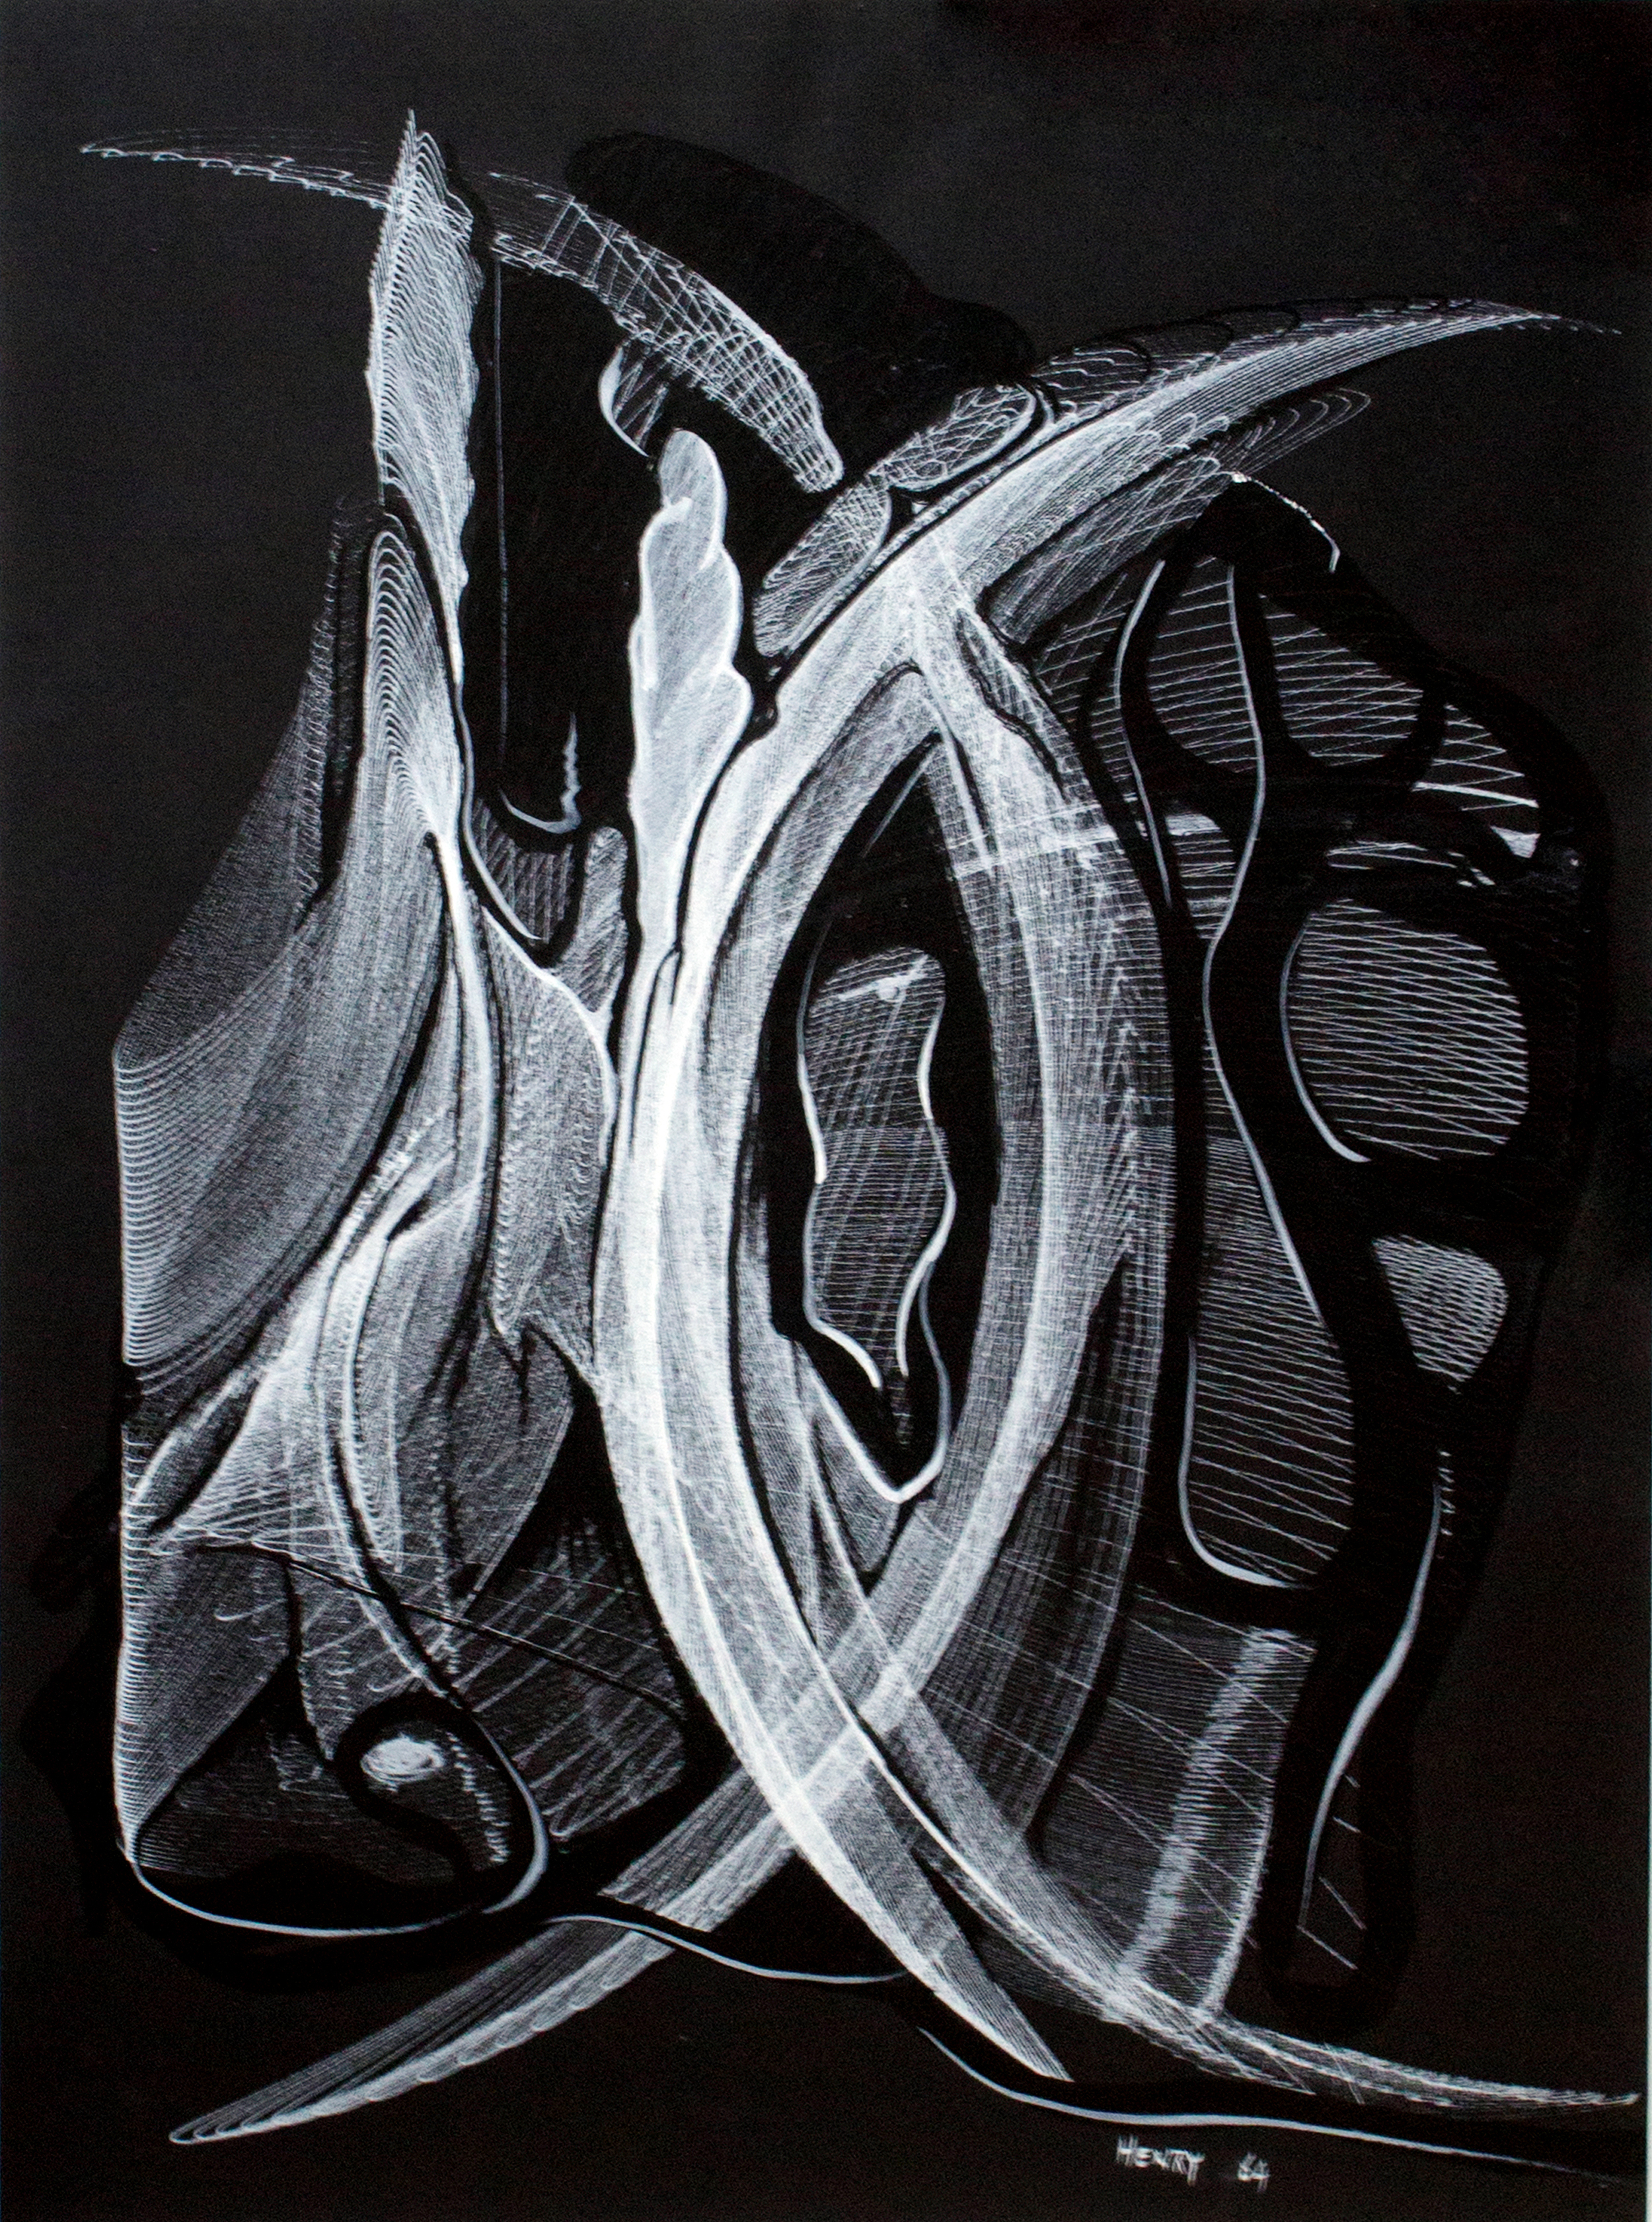 "Desmond Paul Henry  Androbulus, drawing machine, white india ink on black cartridge paper, hand embellishments, 15.35""x20.47"", 1962"